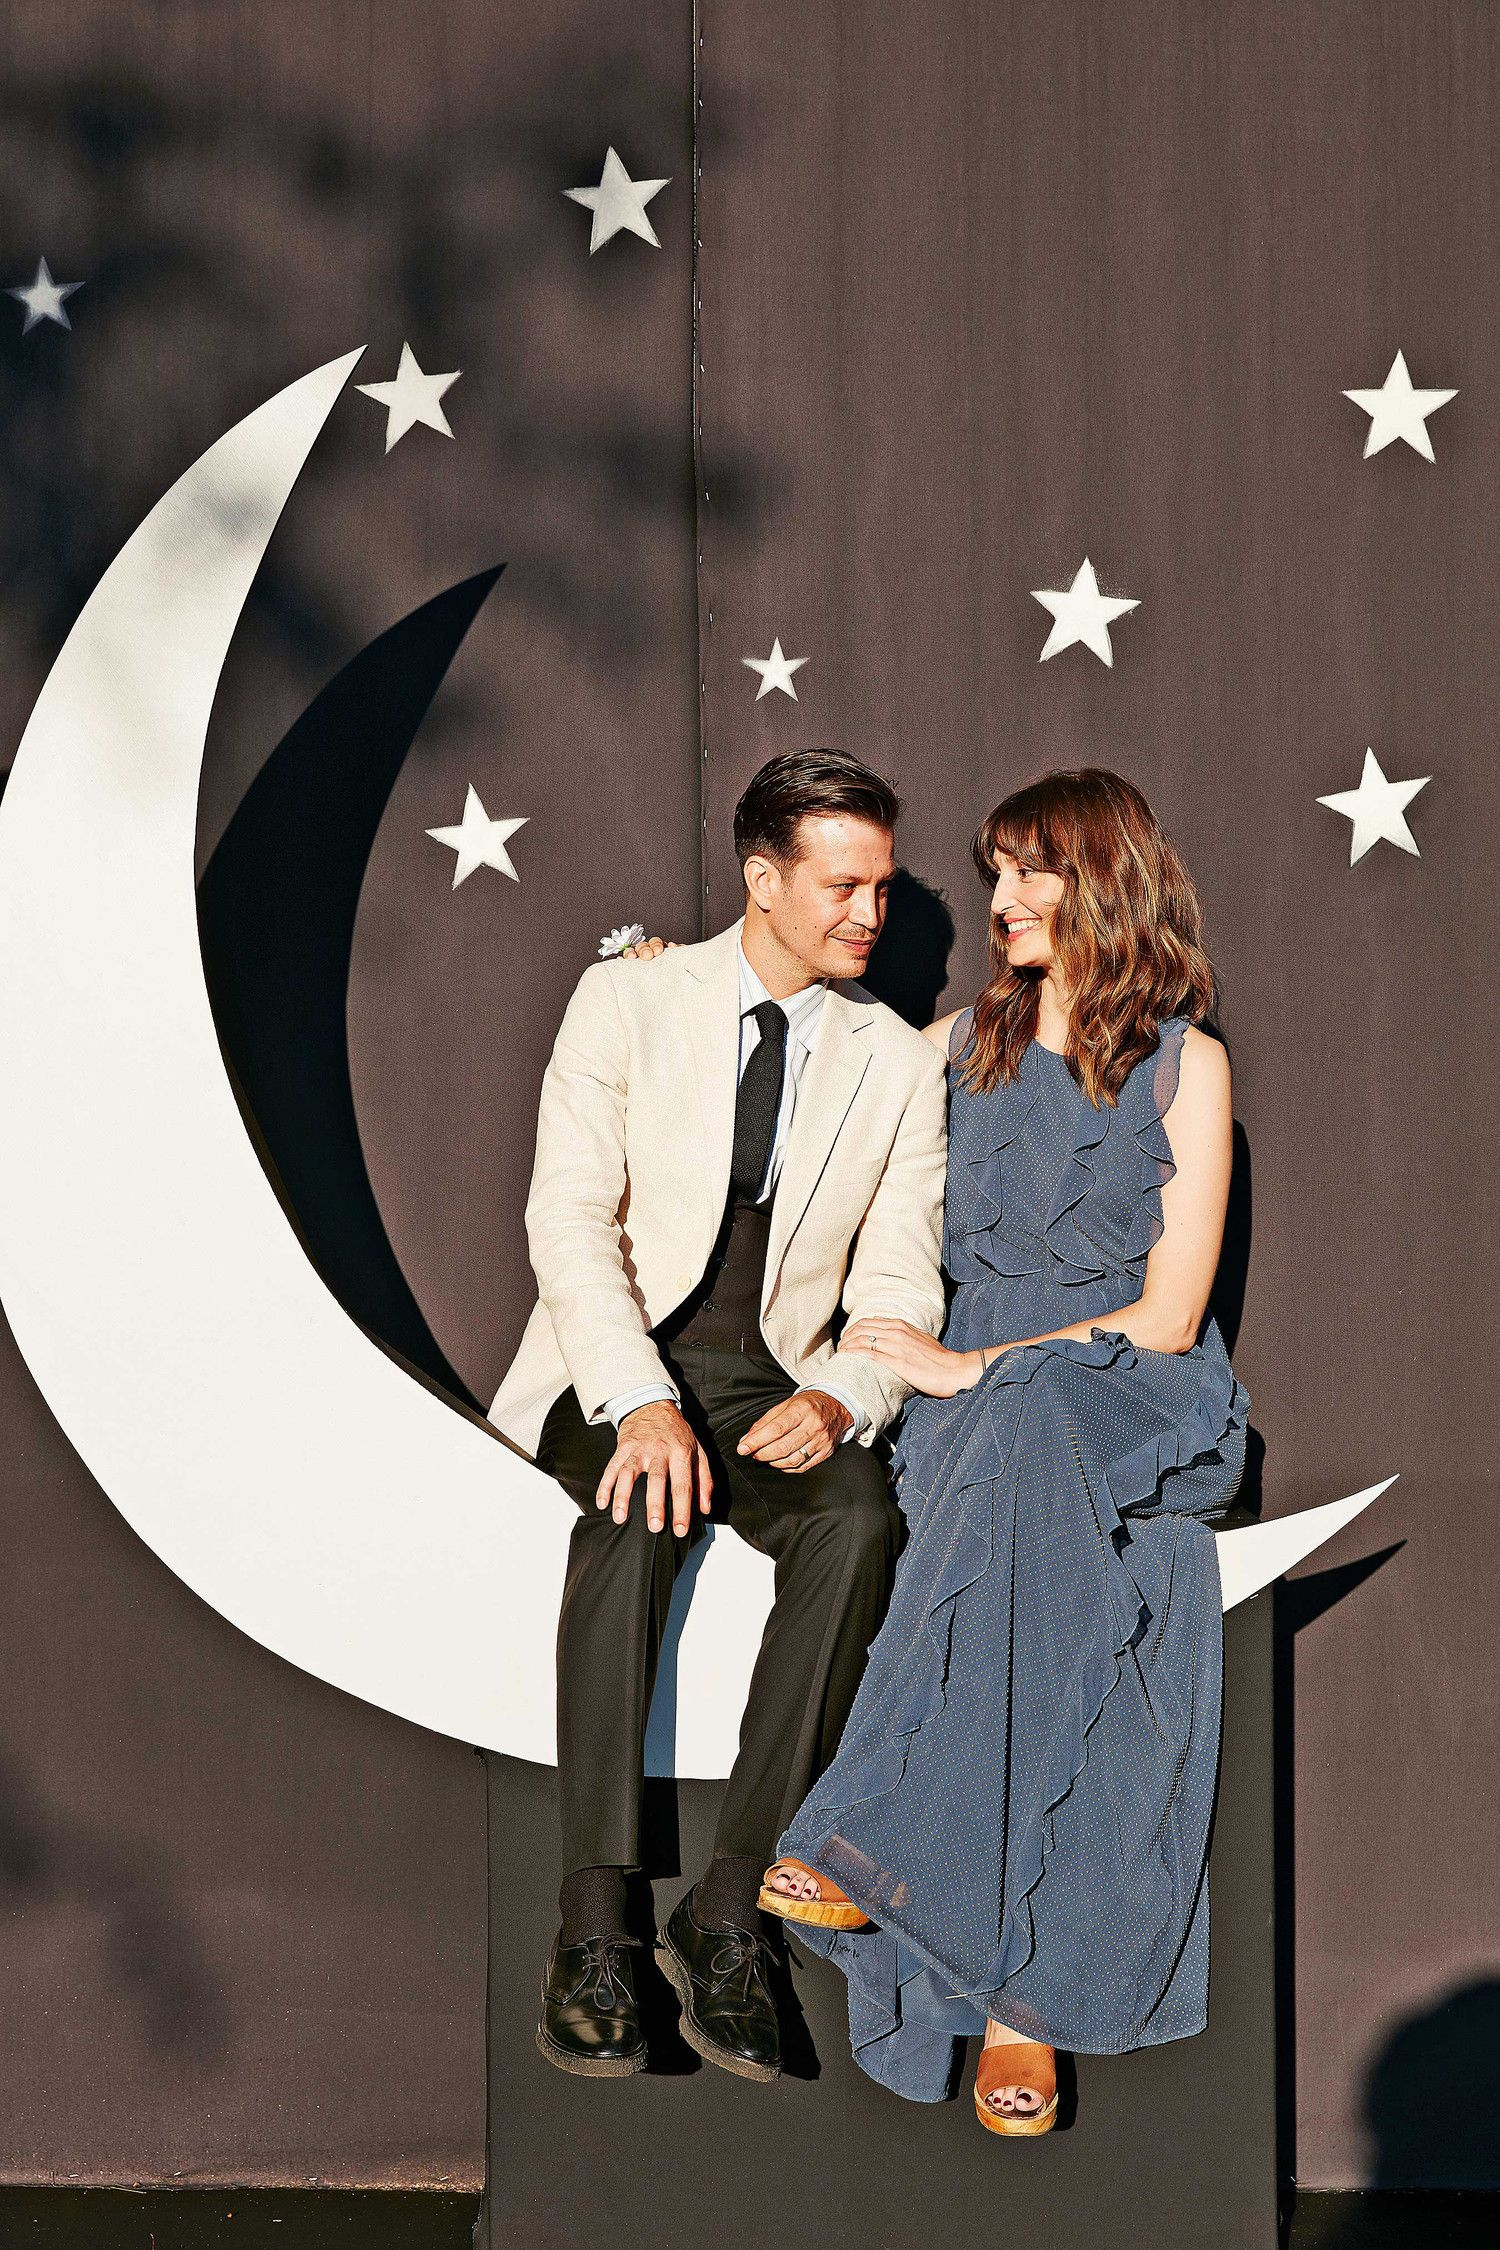 The Photo Booth With Its Oversize Crescent Moon And Backdrop Of Stars Was Built Painted By Their Friends